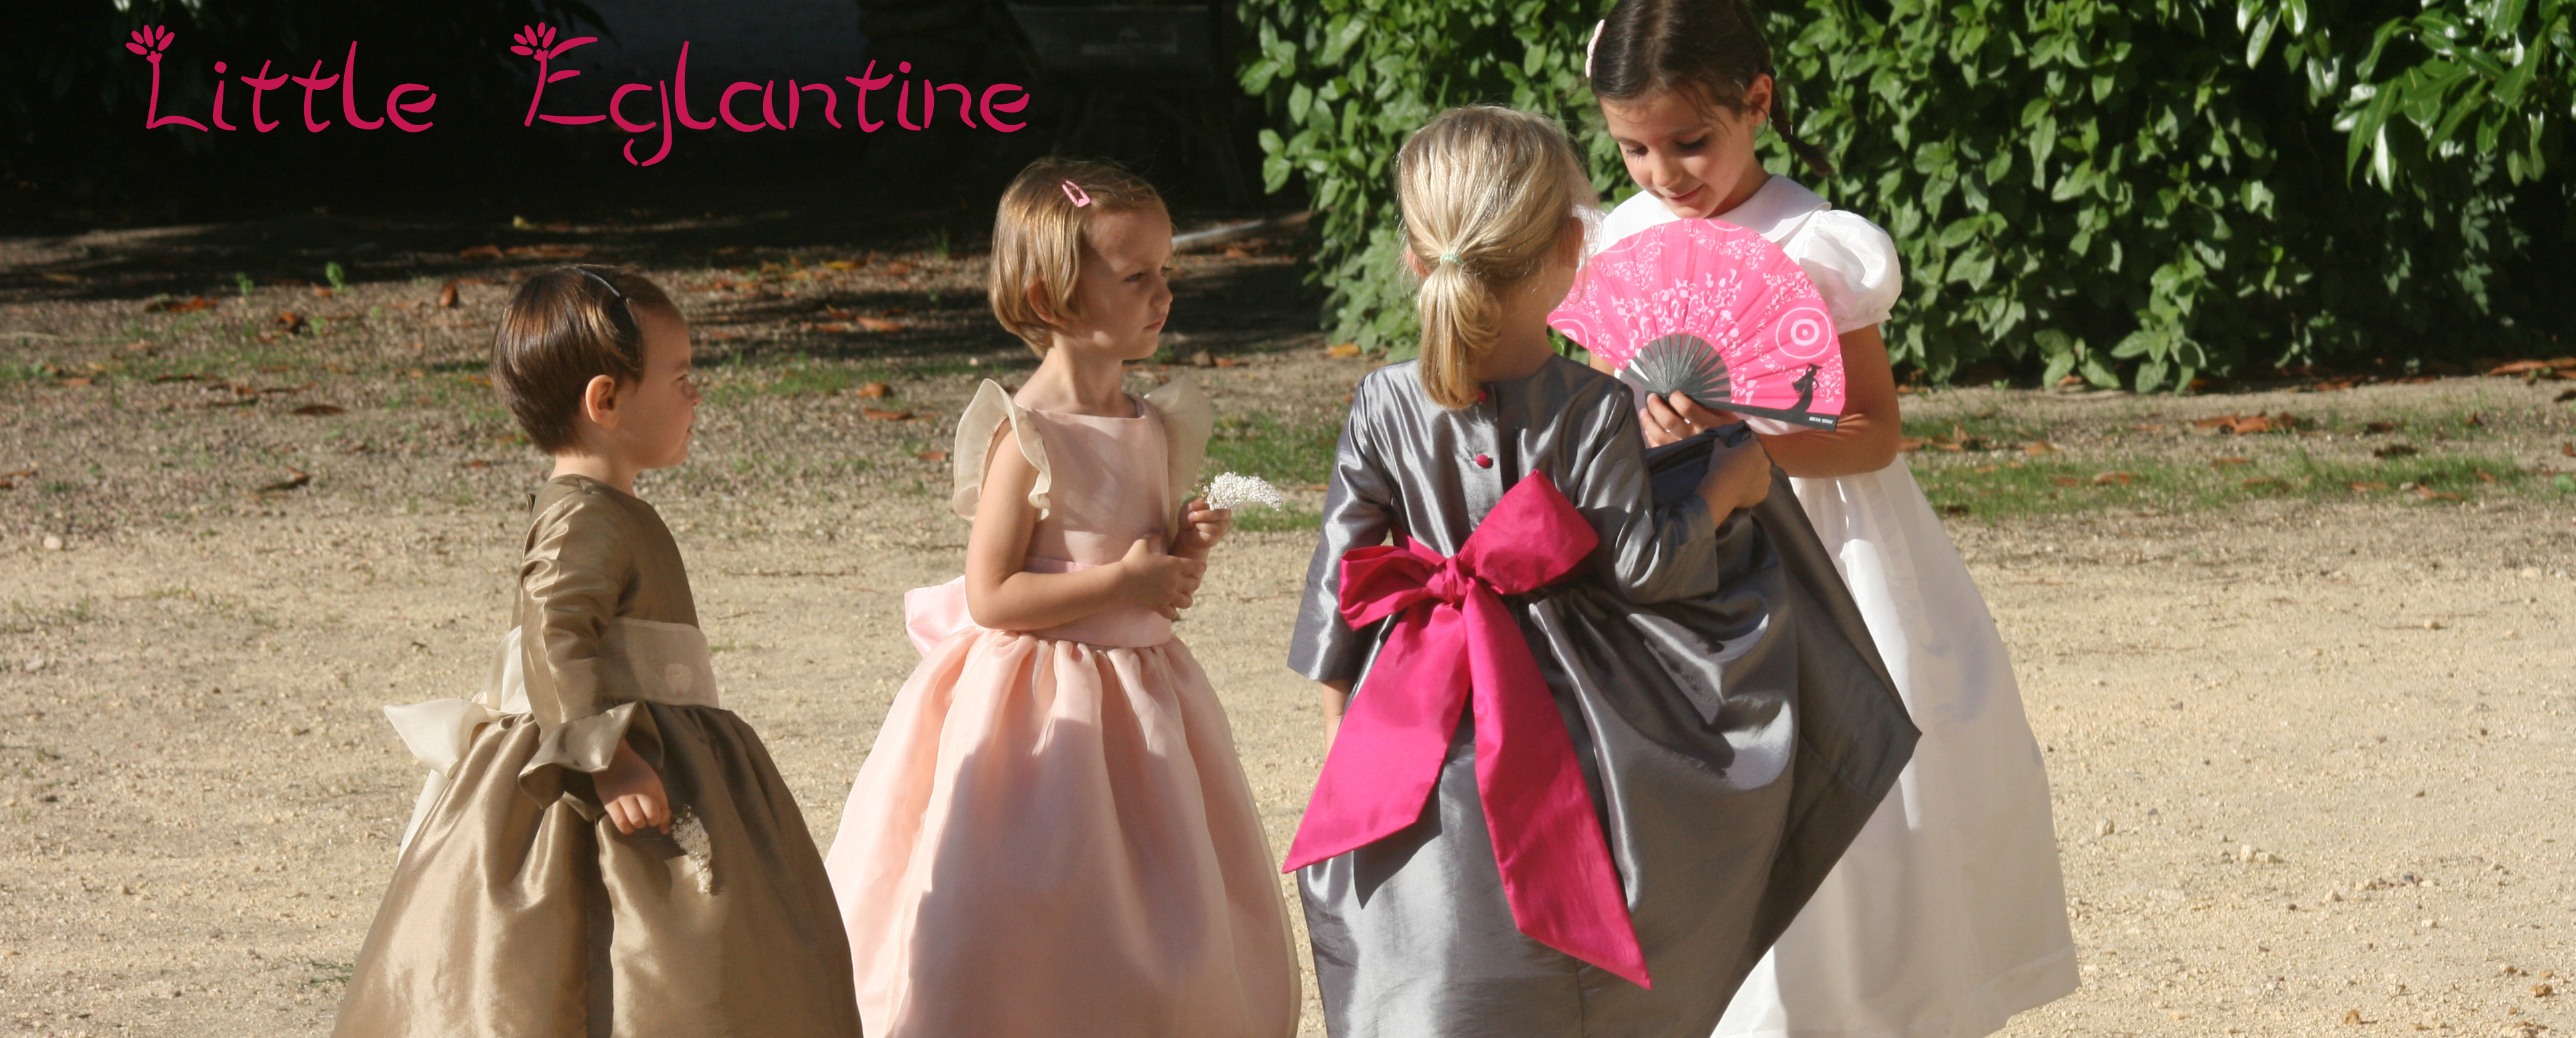 Award winning Designer of flower girl dresses and page boy outfits for the UK